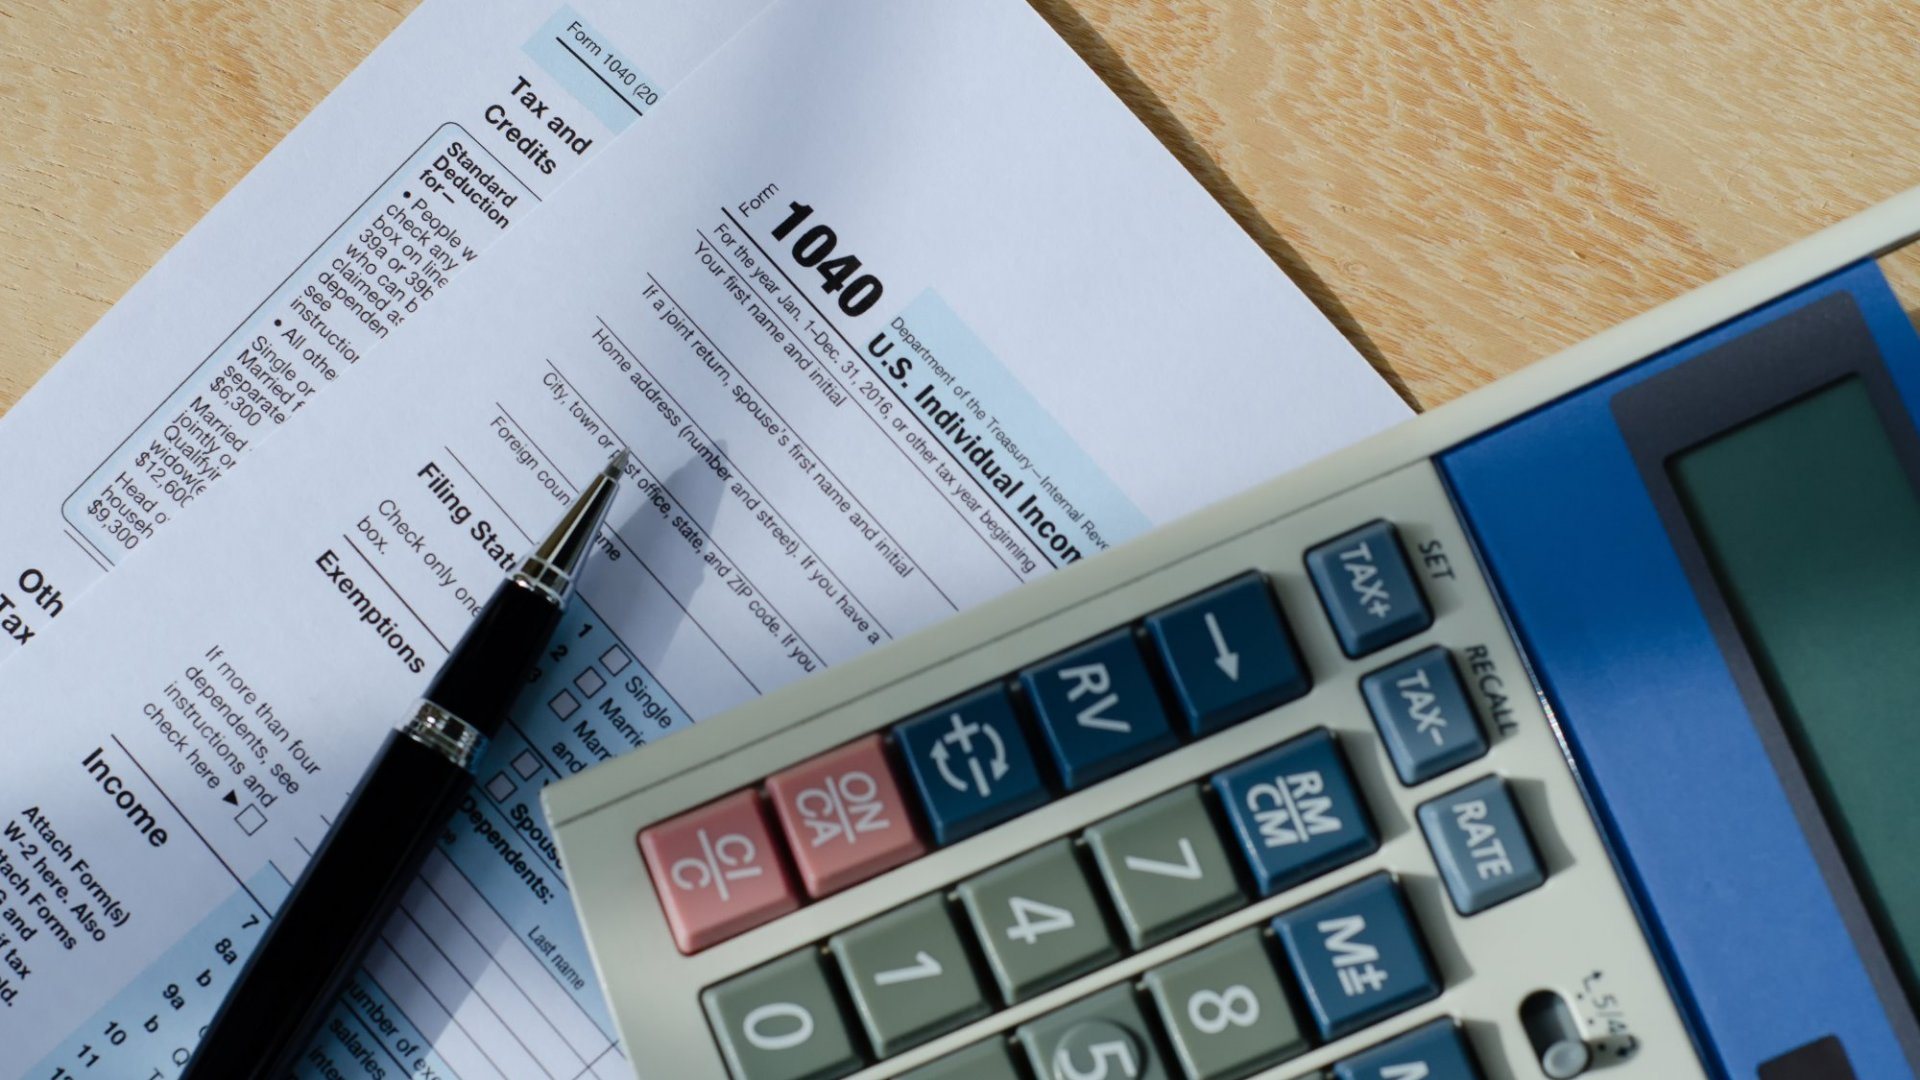 4 Common Small Business Tax Mistakes and How to Avoid Them